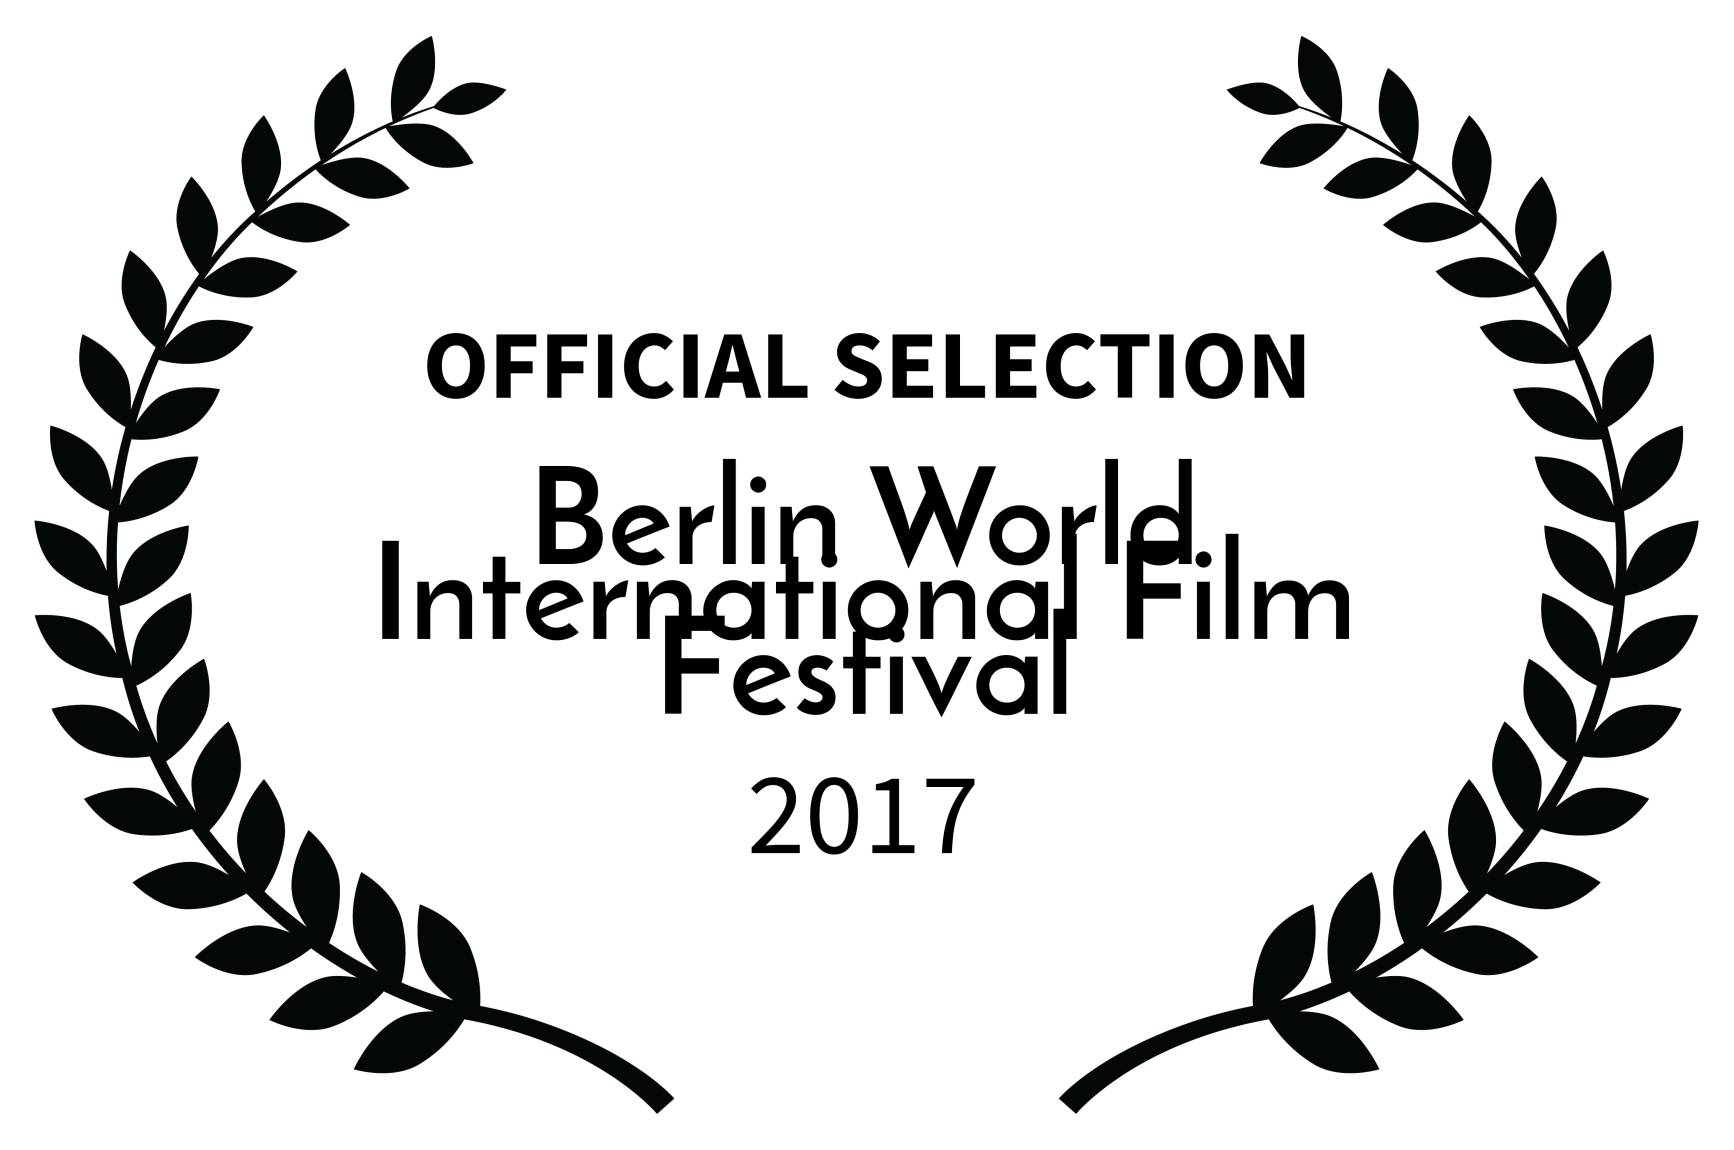 BERLIN WORLD